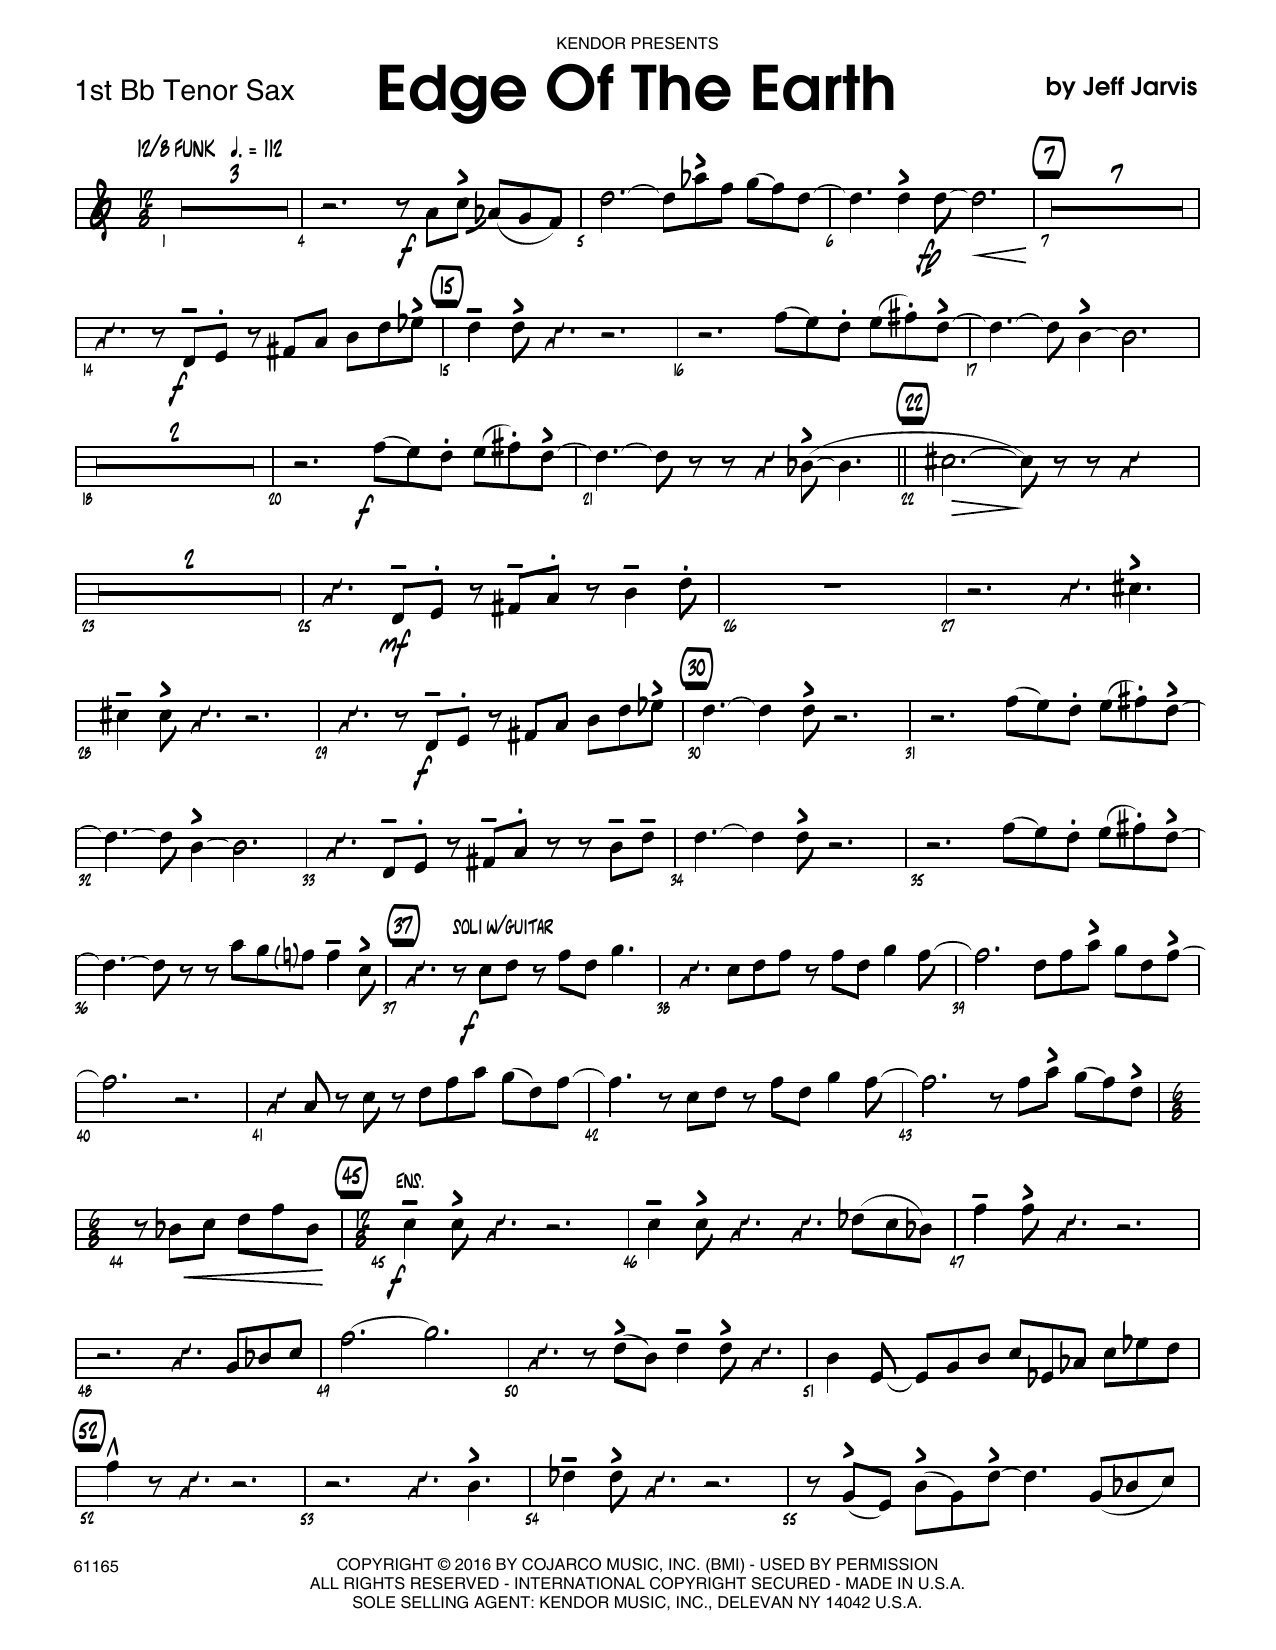 Edge Of The Earth - 1st Tenor Saxophone Sheet Music